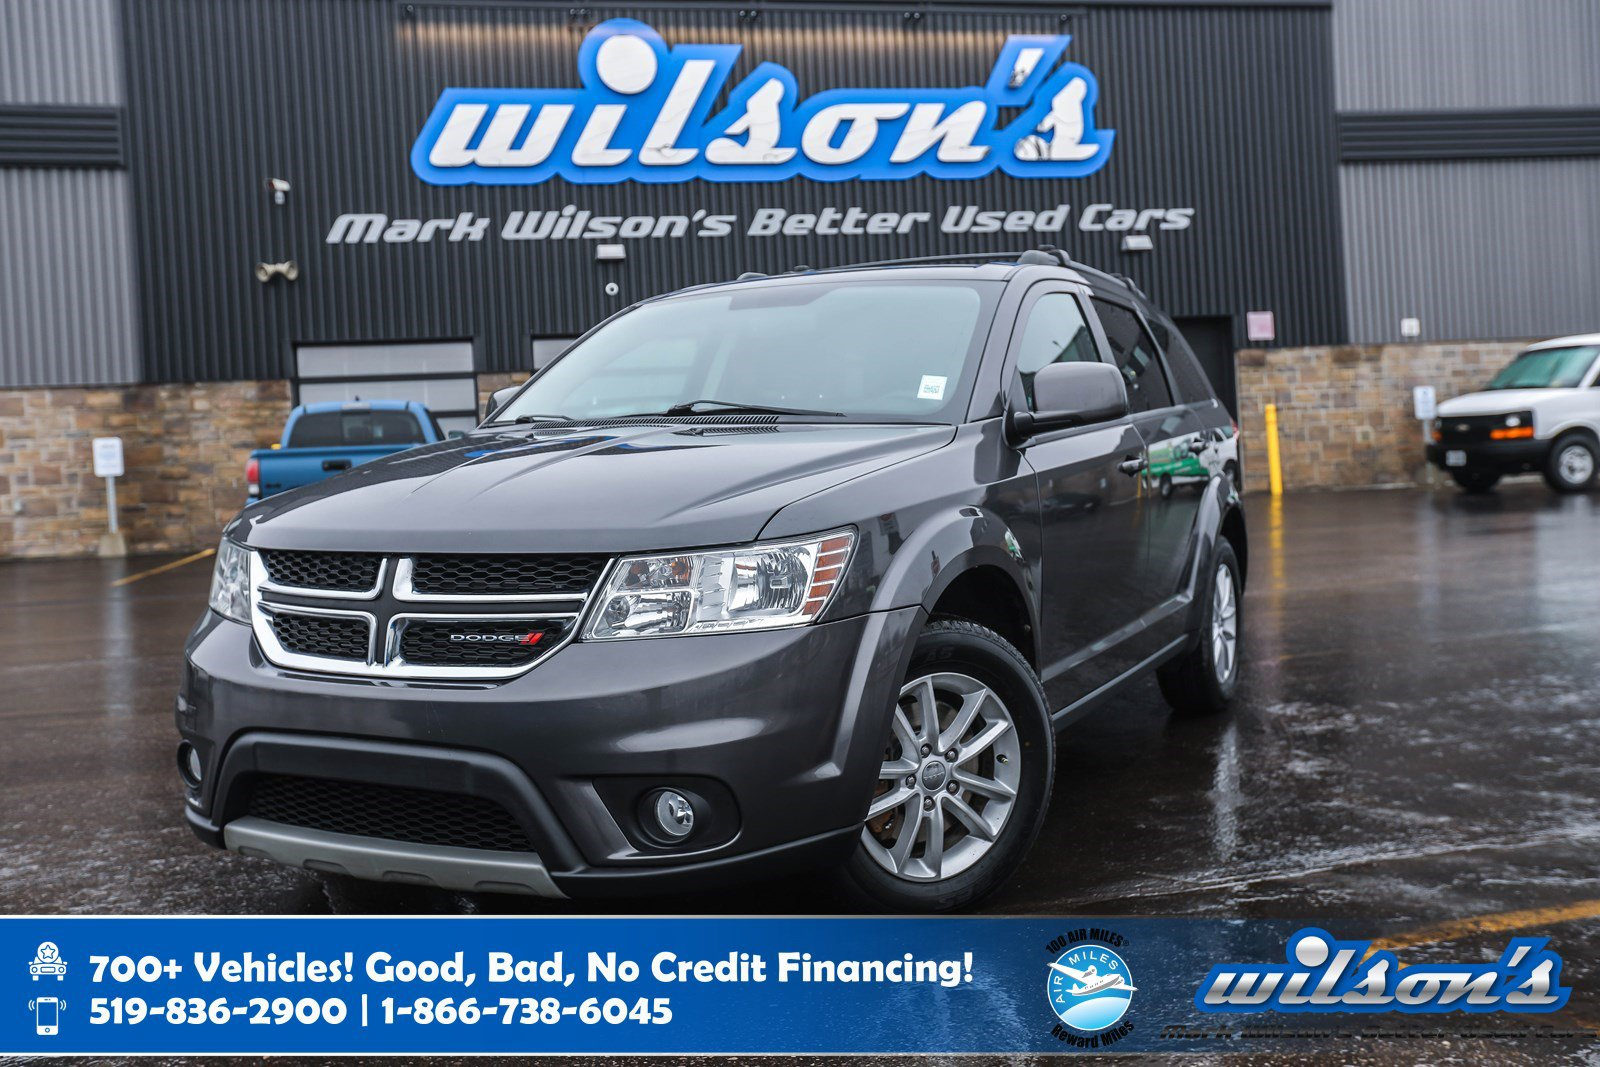 Certified Pre-Owned 2015 Dodge Journey SXT, 7 Passenger, New Tires, Cruise Control, Alloy Wheels, Keyless Entry, Power Package and more!